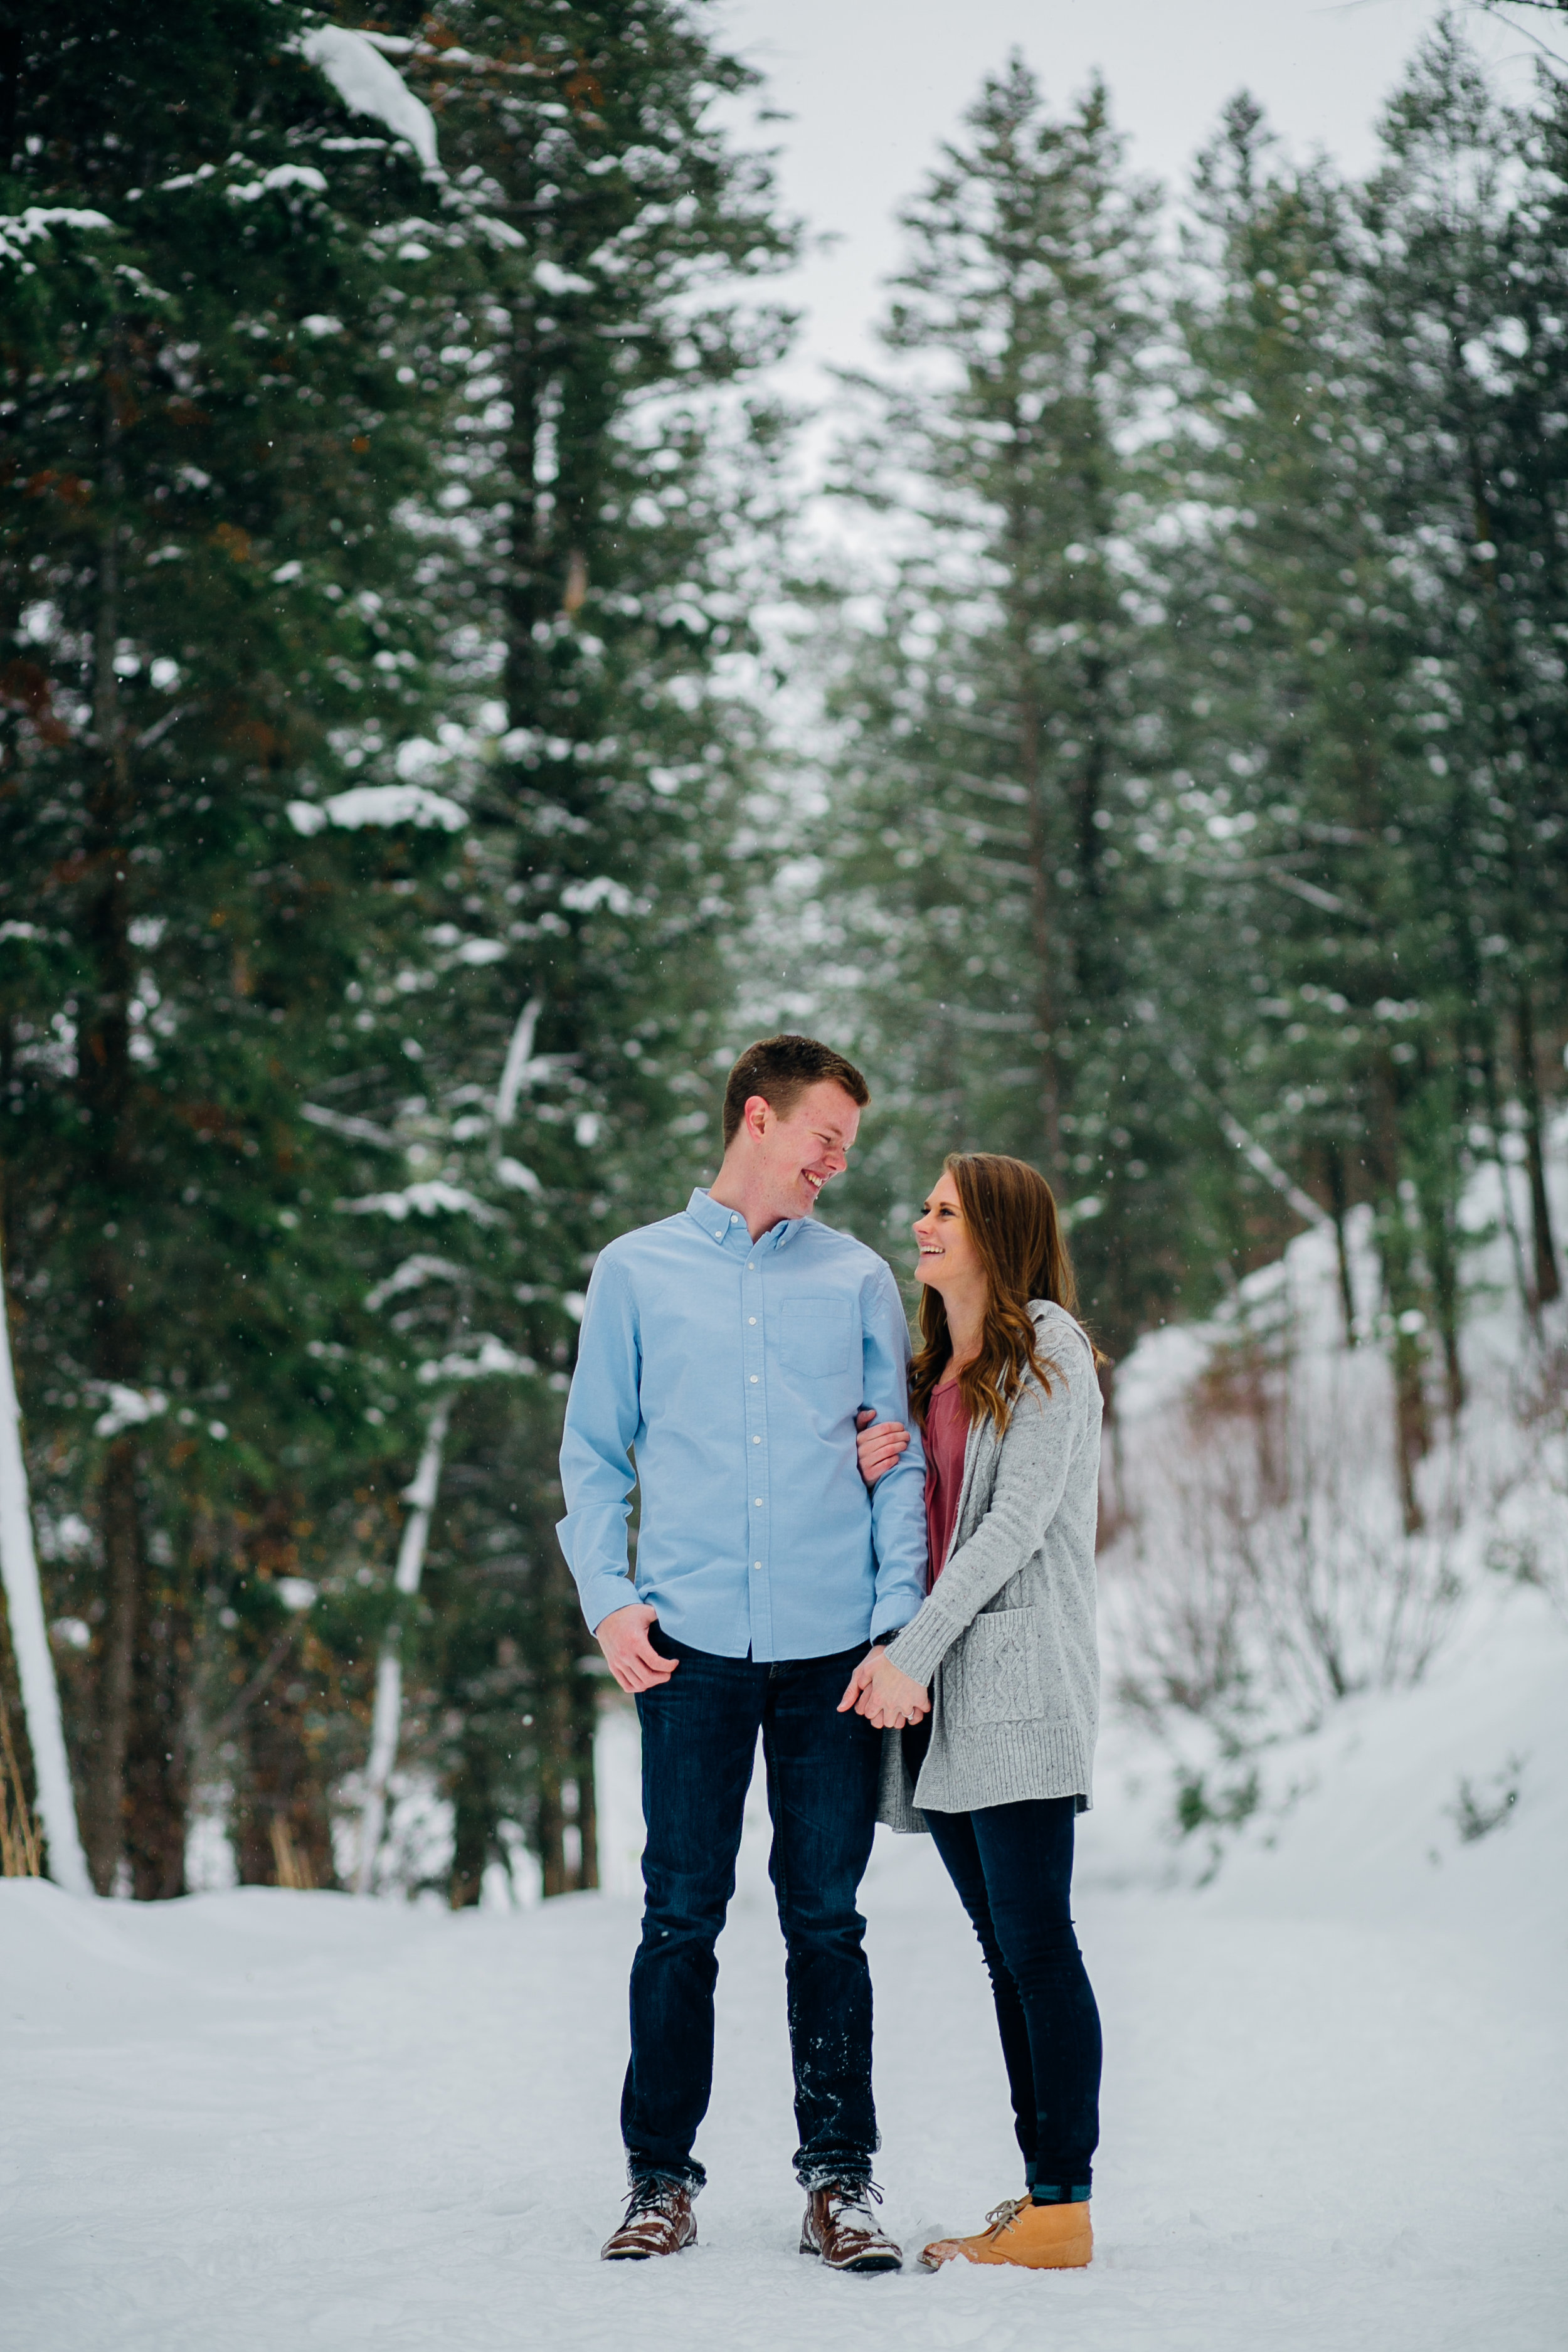 kelly-canyon-snowy-winter-engagements-idaho-wedding-elopement-photographer-16.jpg